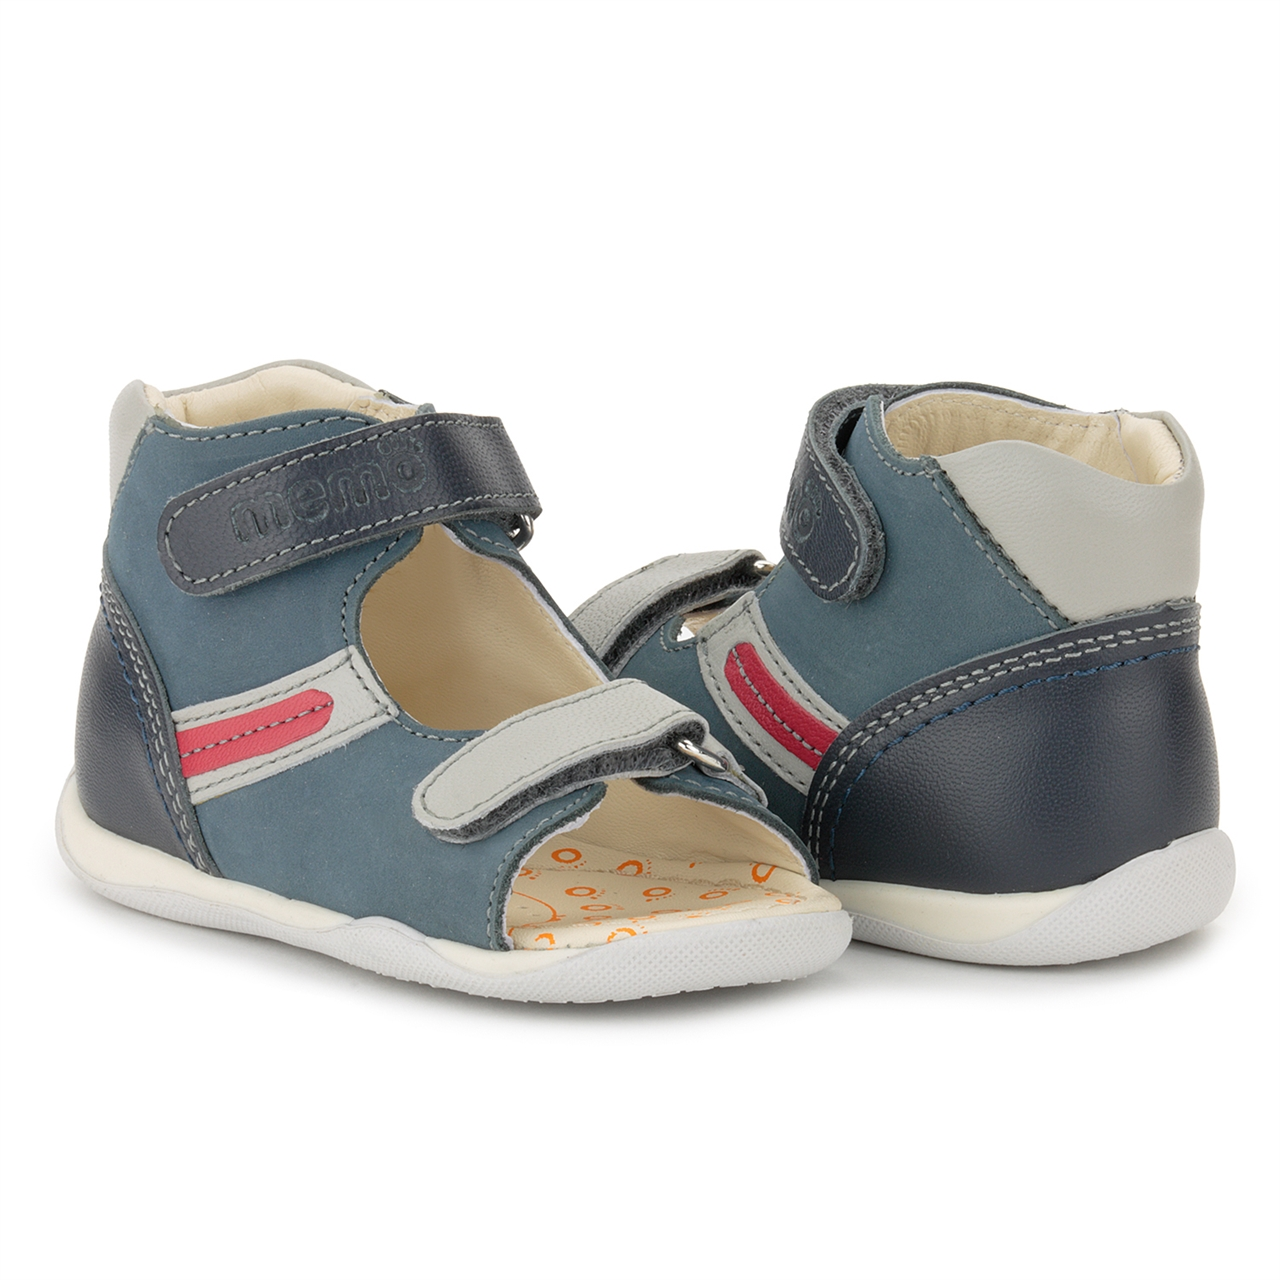 9e17a87dfaba Picture of Memo MIKI 1CH Blue Infant   Toddler Boy First Walking Orthopedic  Velcro Sandal ...